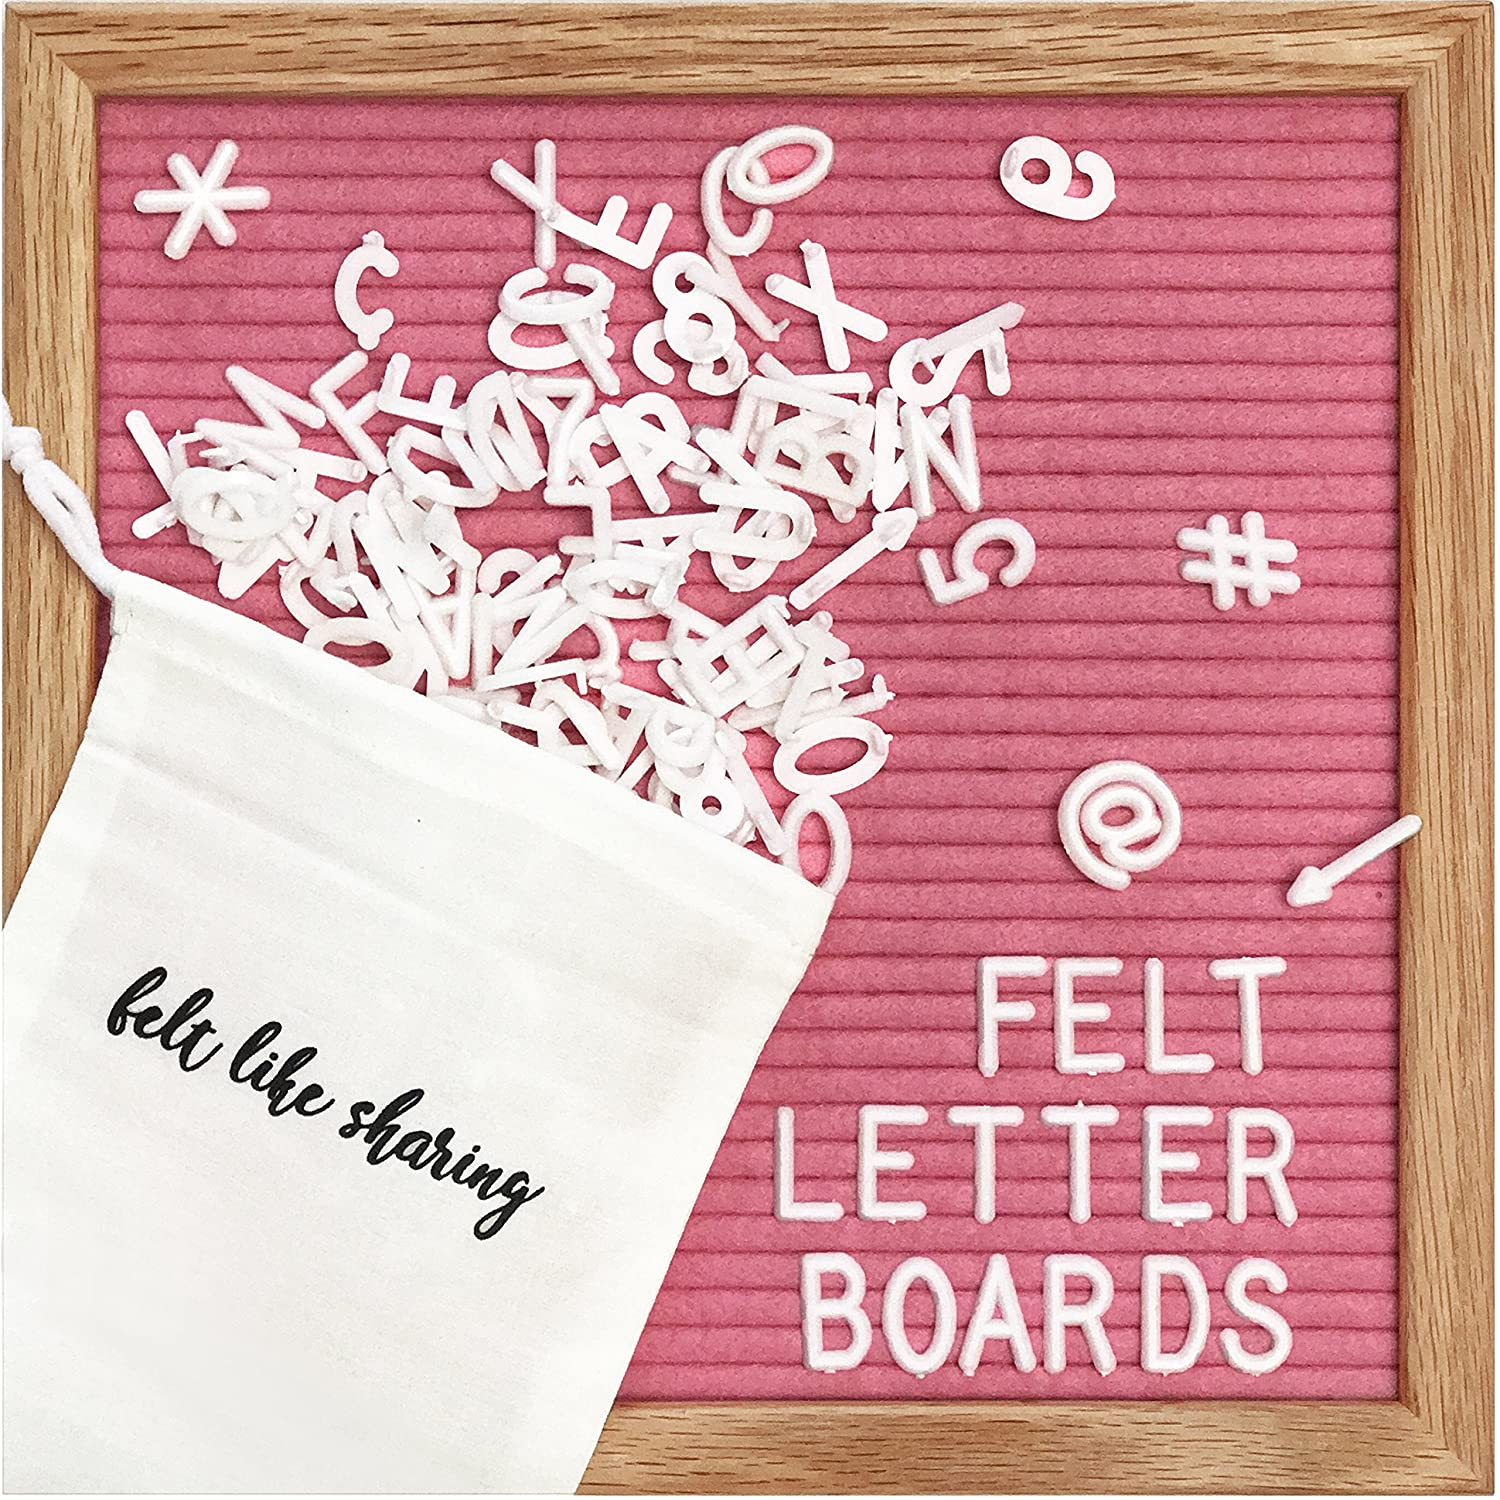 Amazon.com : Hot Pink Felt Letter Board 10x10 Inches. Changeable ...